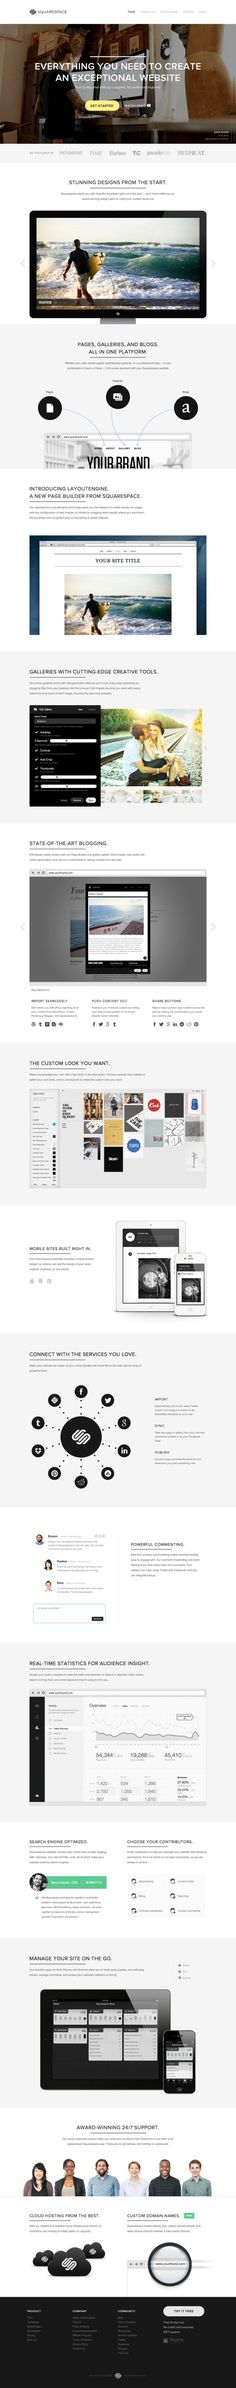 squarespace #design #web #ui